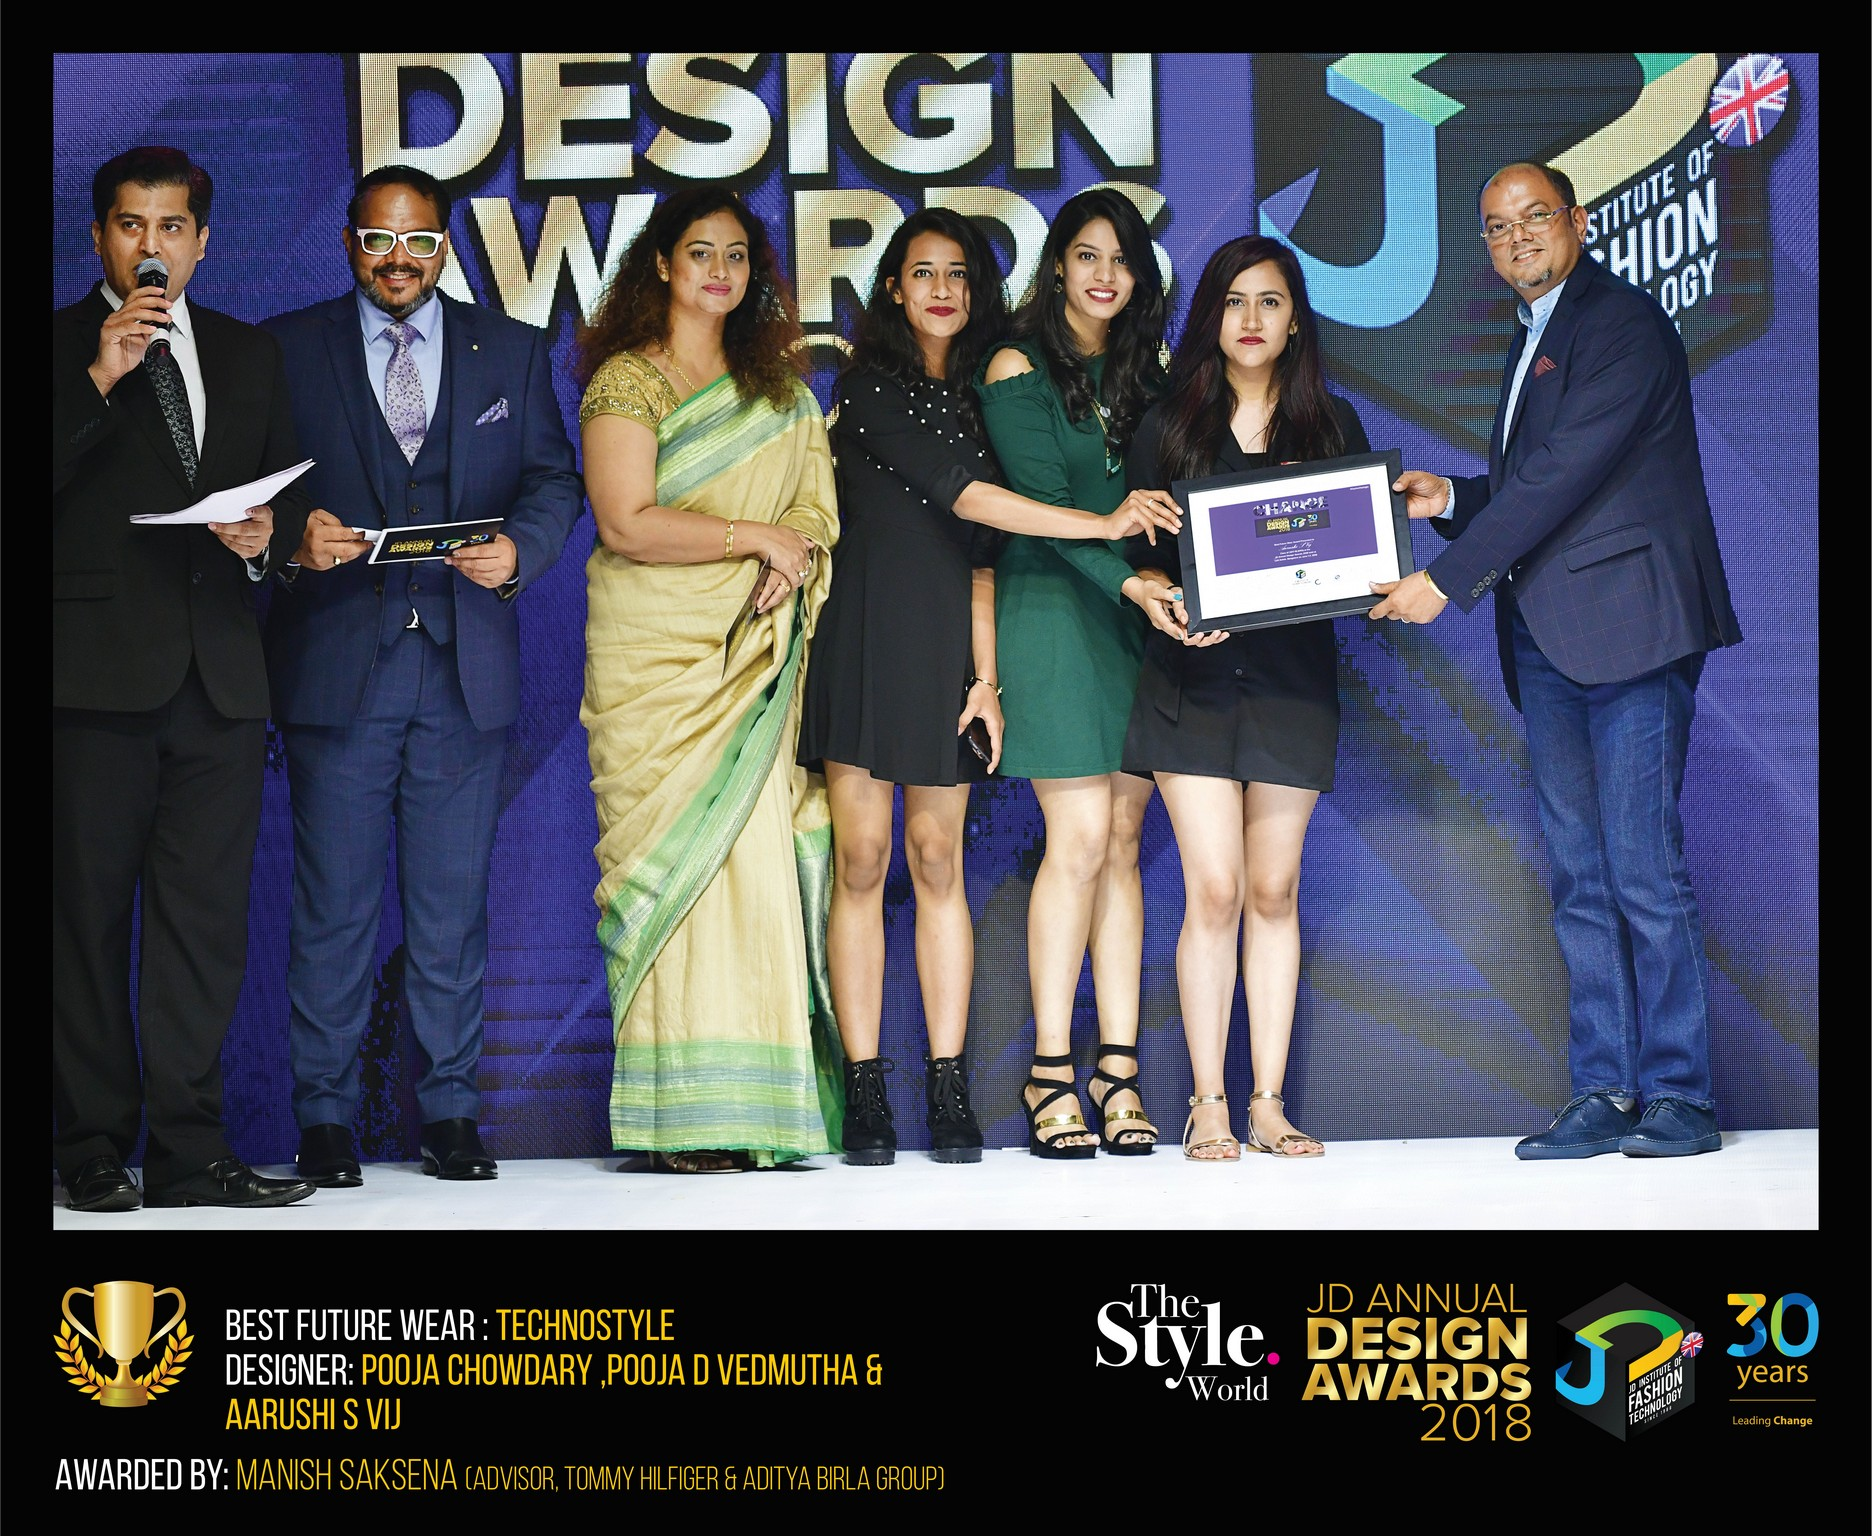 Techno style – Change – JD Annual Design Awards 2018 | Designer: M. Pooja, Pooja.D | Photography : Jerin Nath (@jerin_nath) techno style - Technostyle8 final - Techno style – Change – JD Annual Design Awards 2018